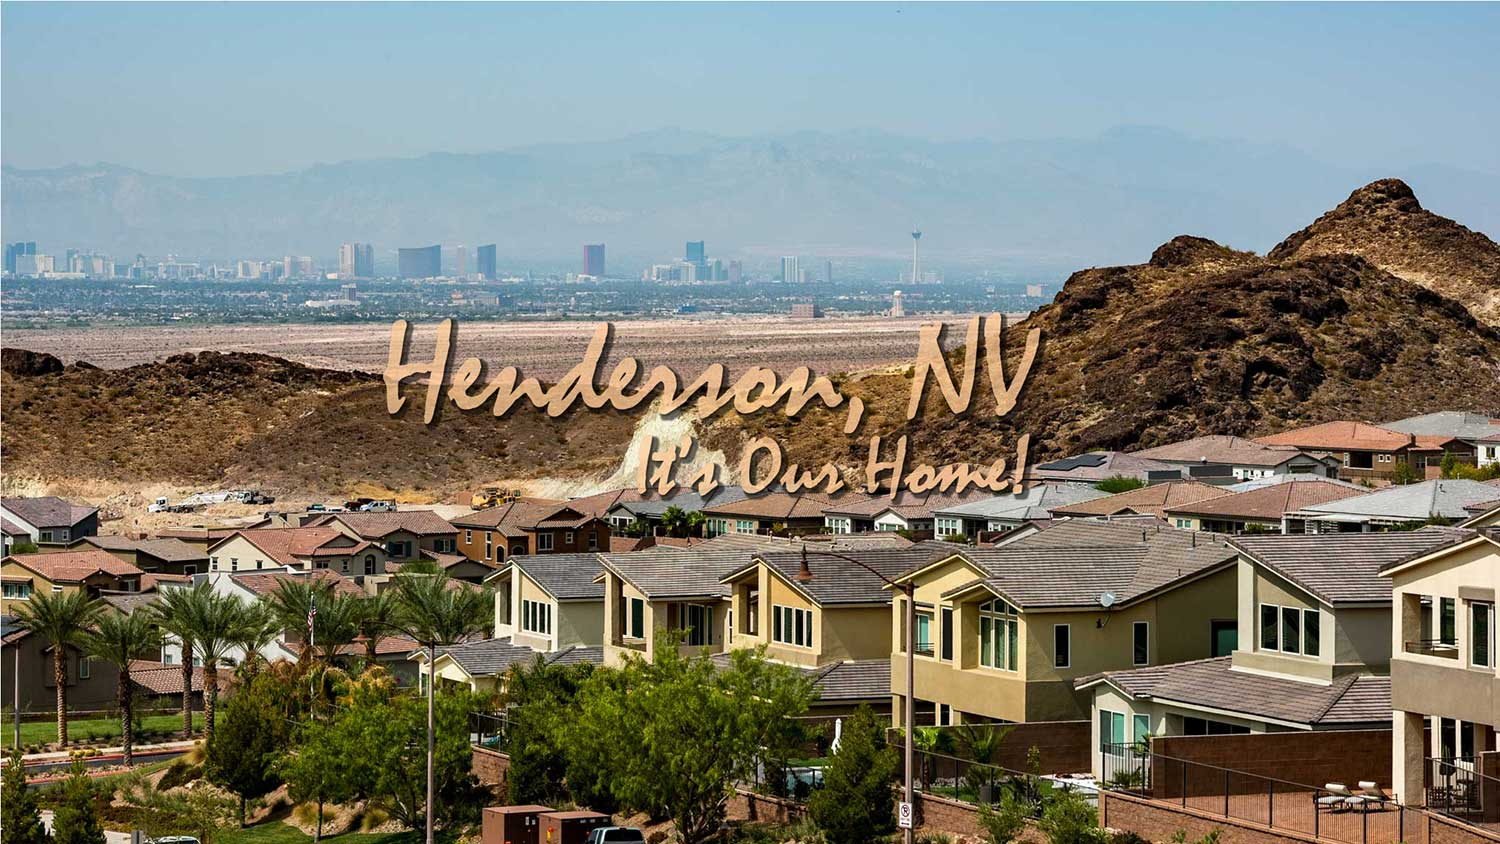 Henderson NV its where we live, work, and play.  This photo taken at a Lake Las Vegas community with complete views of the Las Vegas strip.